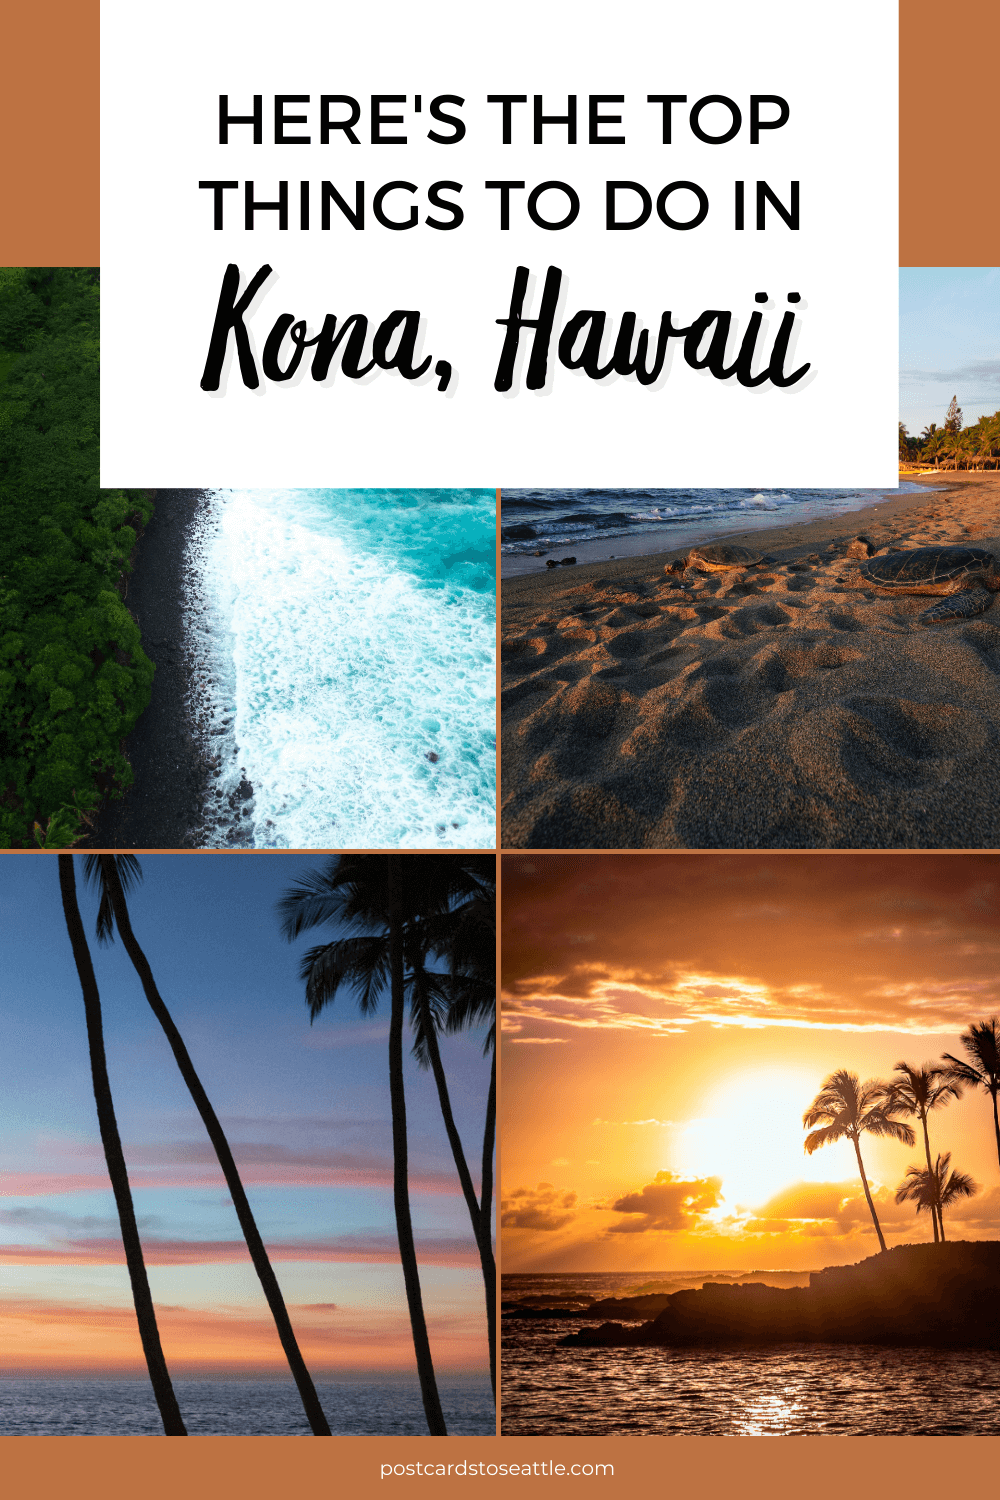 15 Amazing Things to Do in Kona on Your Next Trip